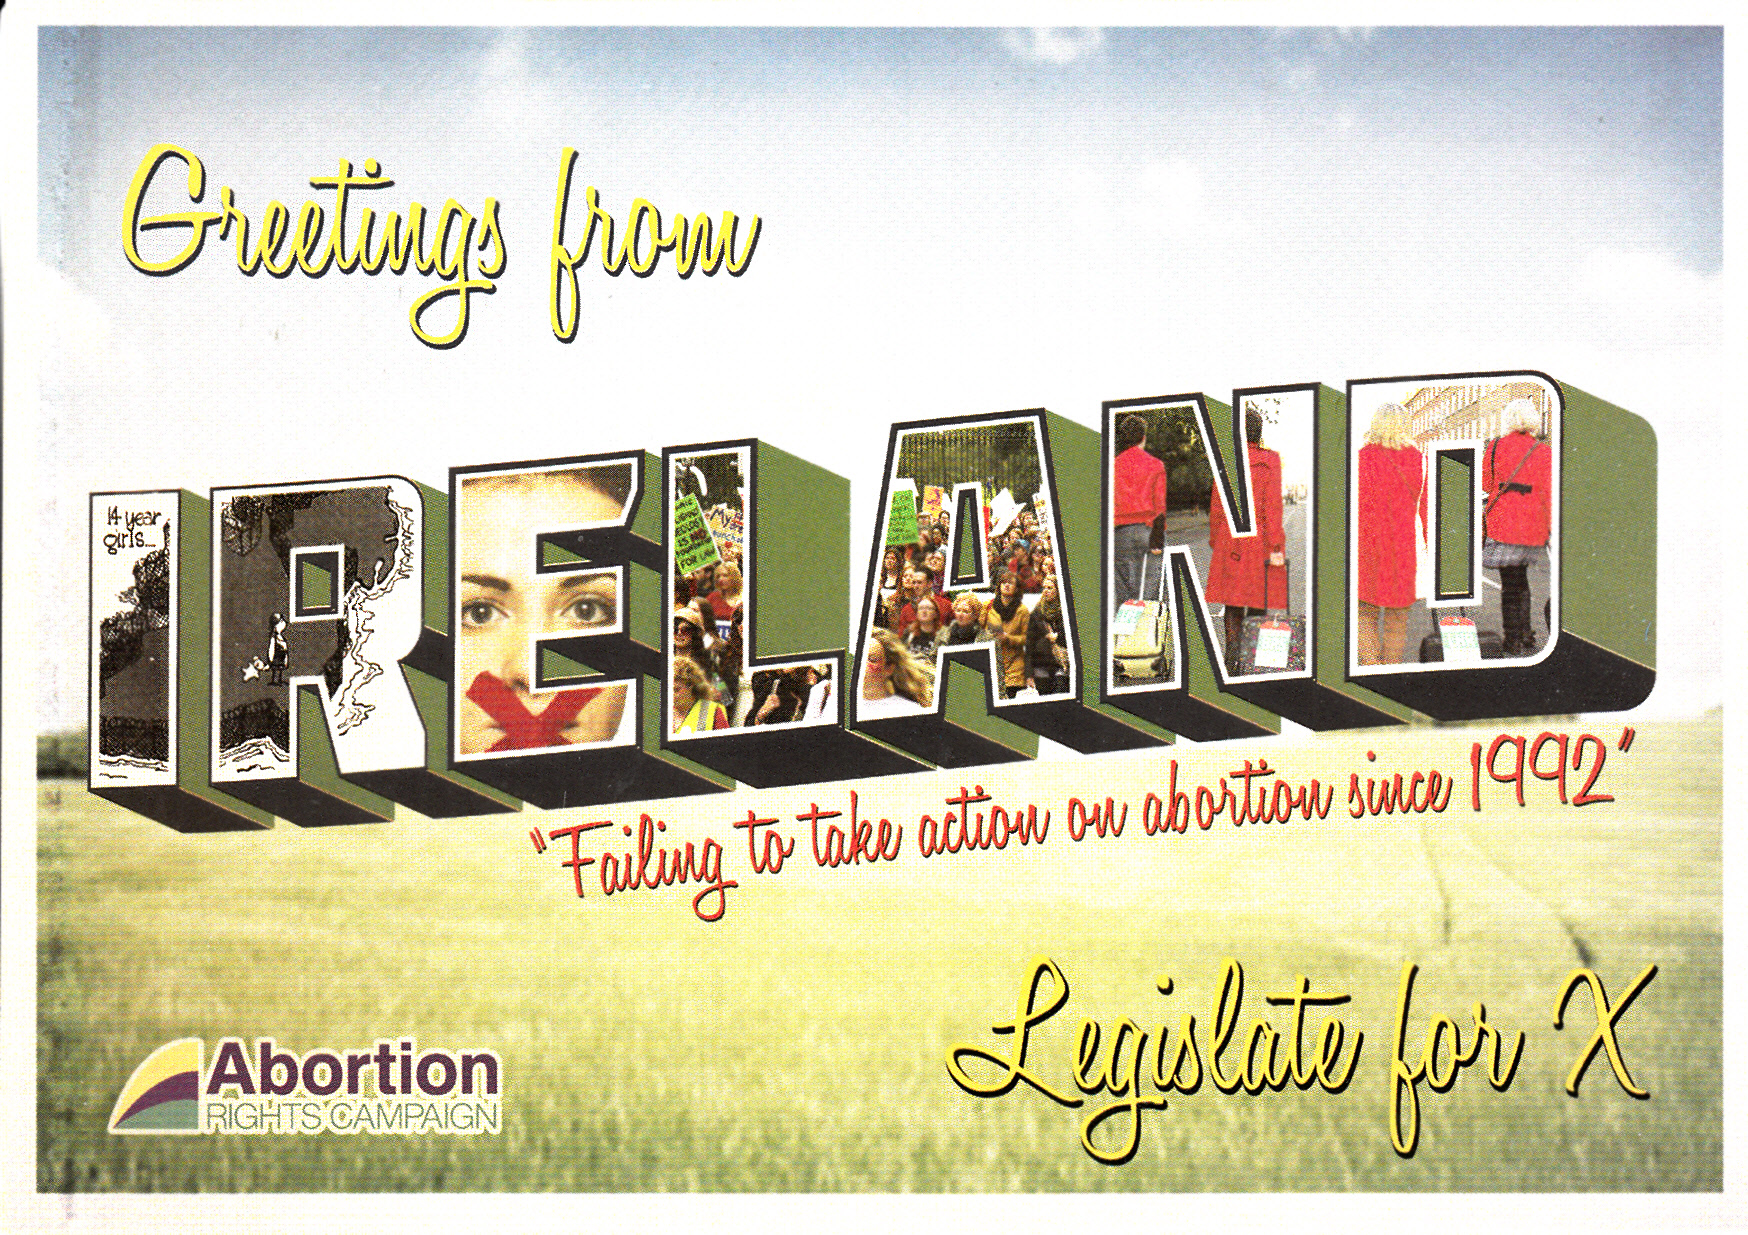 abortion rights campaign_0001